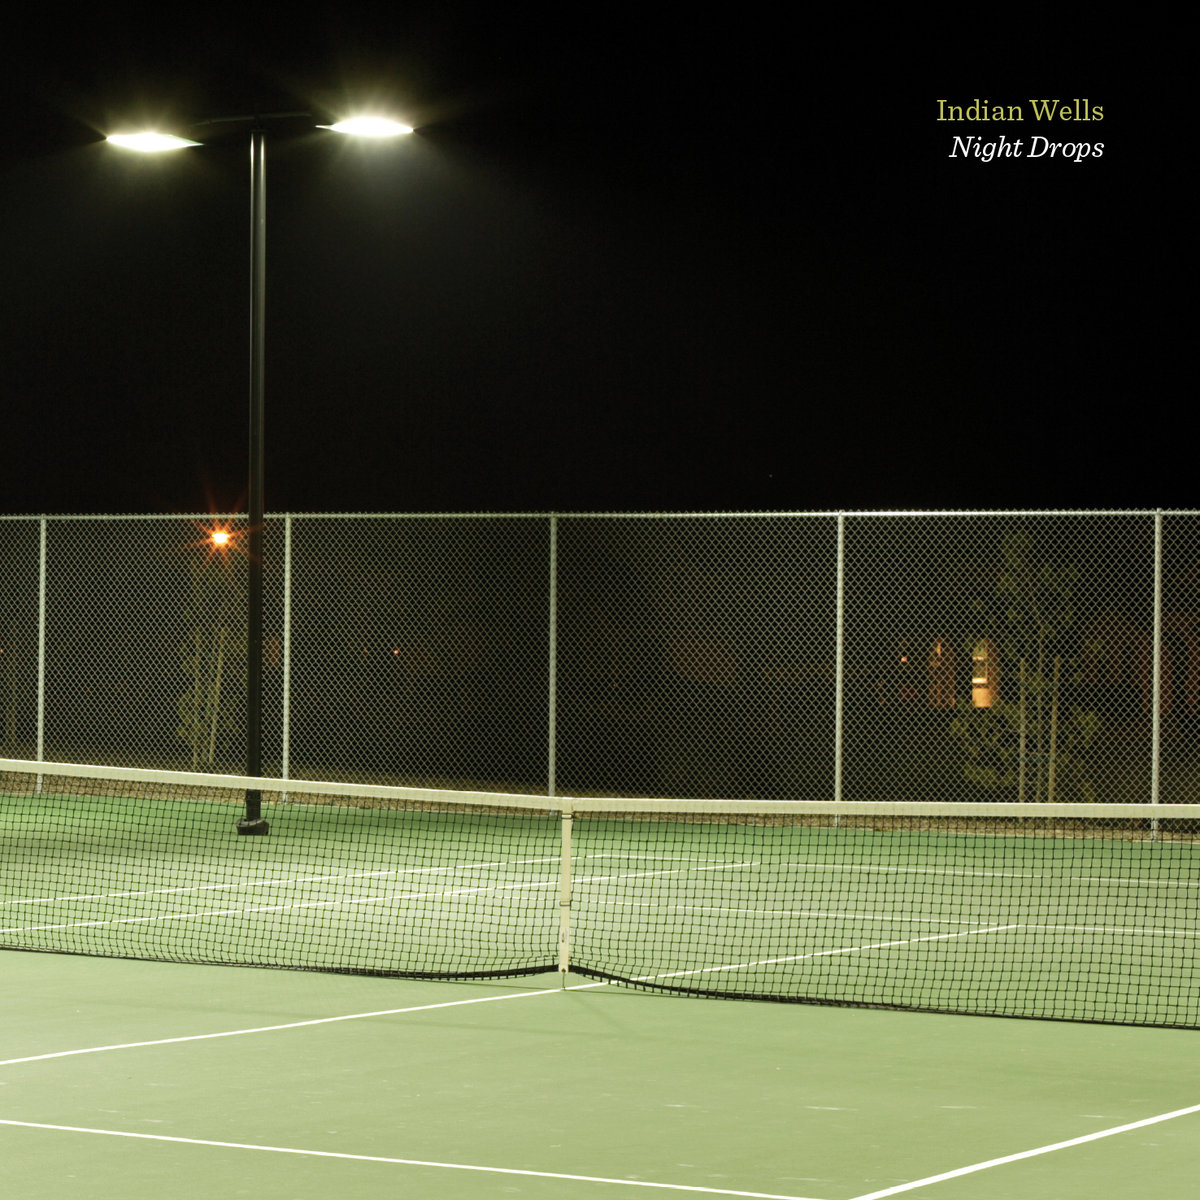 Indian Wells - Golden Shoes @ 'Night Drops' album (alternative, ambient)